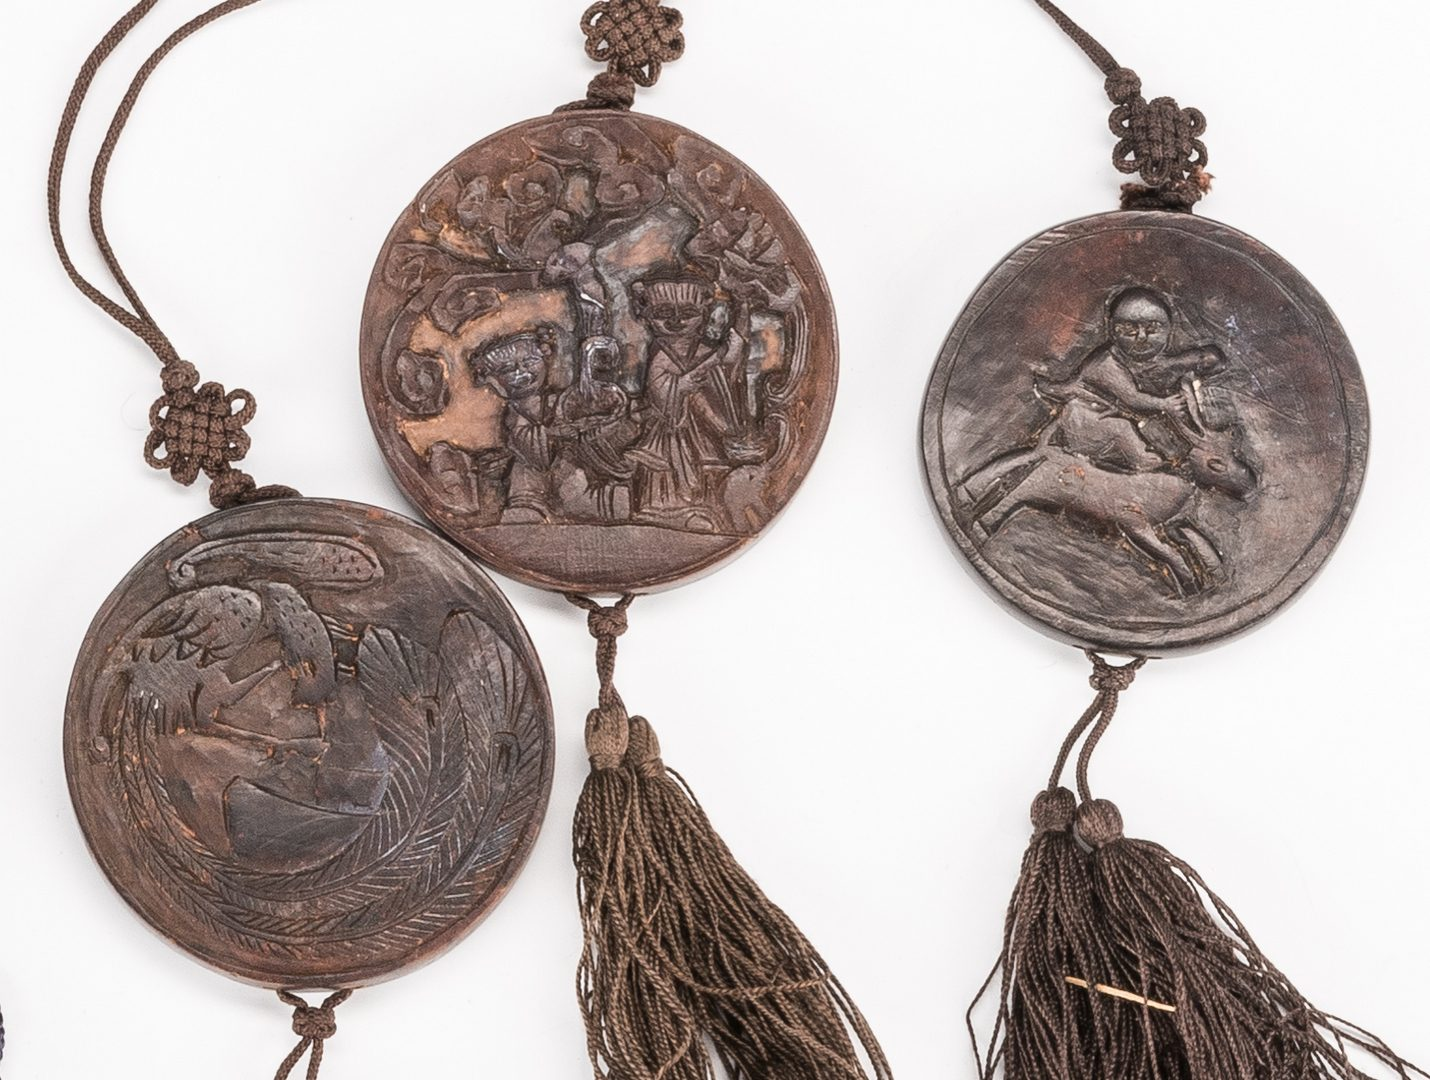 Lot 767: 14 Asian items, inc. Shoes, Clothing Items, Wooden Pendants